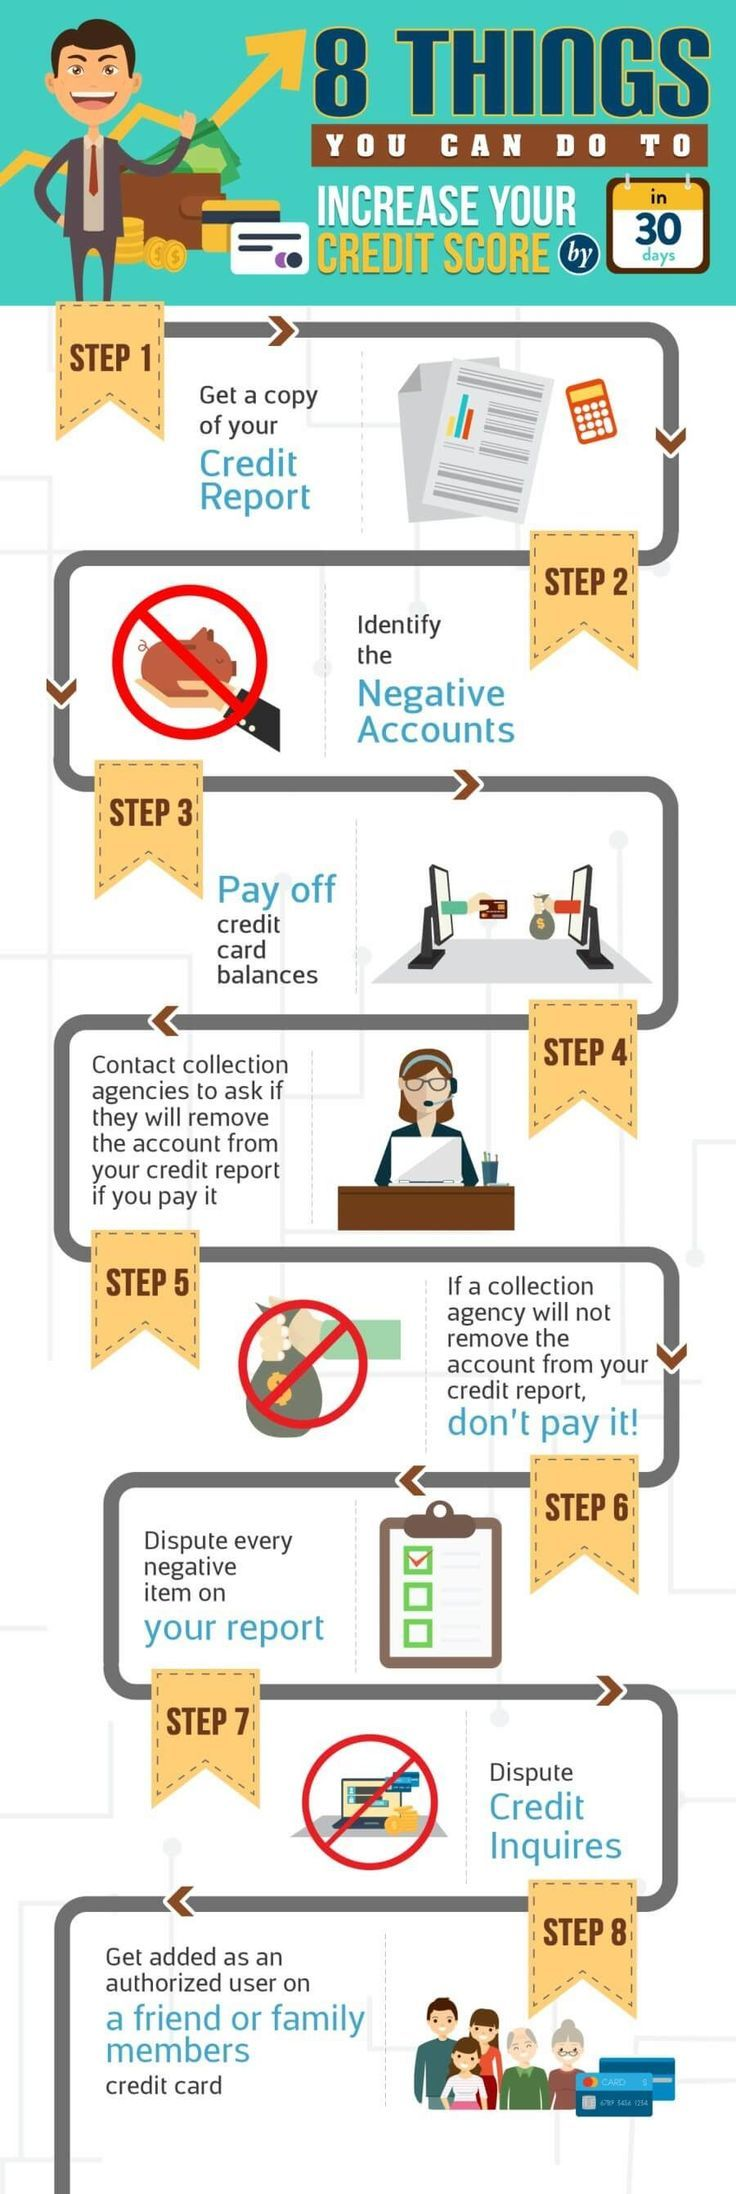 Credit Scores Needed To Qualify For A Kentucky Mortgage Loan Approval Credit Card Payoff Plan Ideas Of C Credit Repair Improve Credit Improve Credit Score